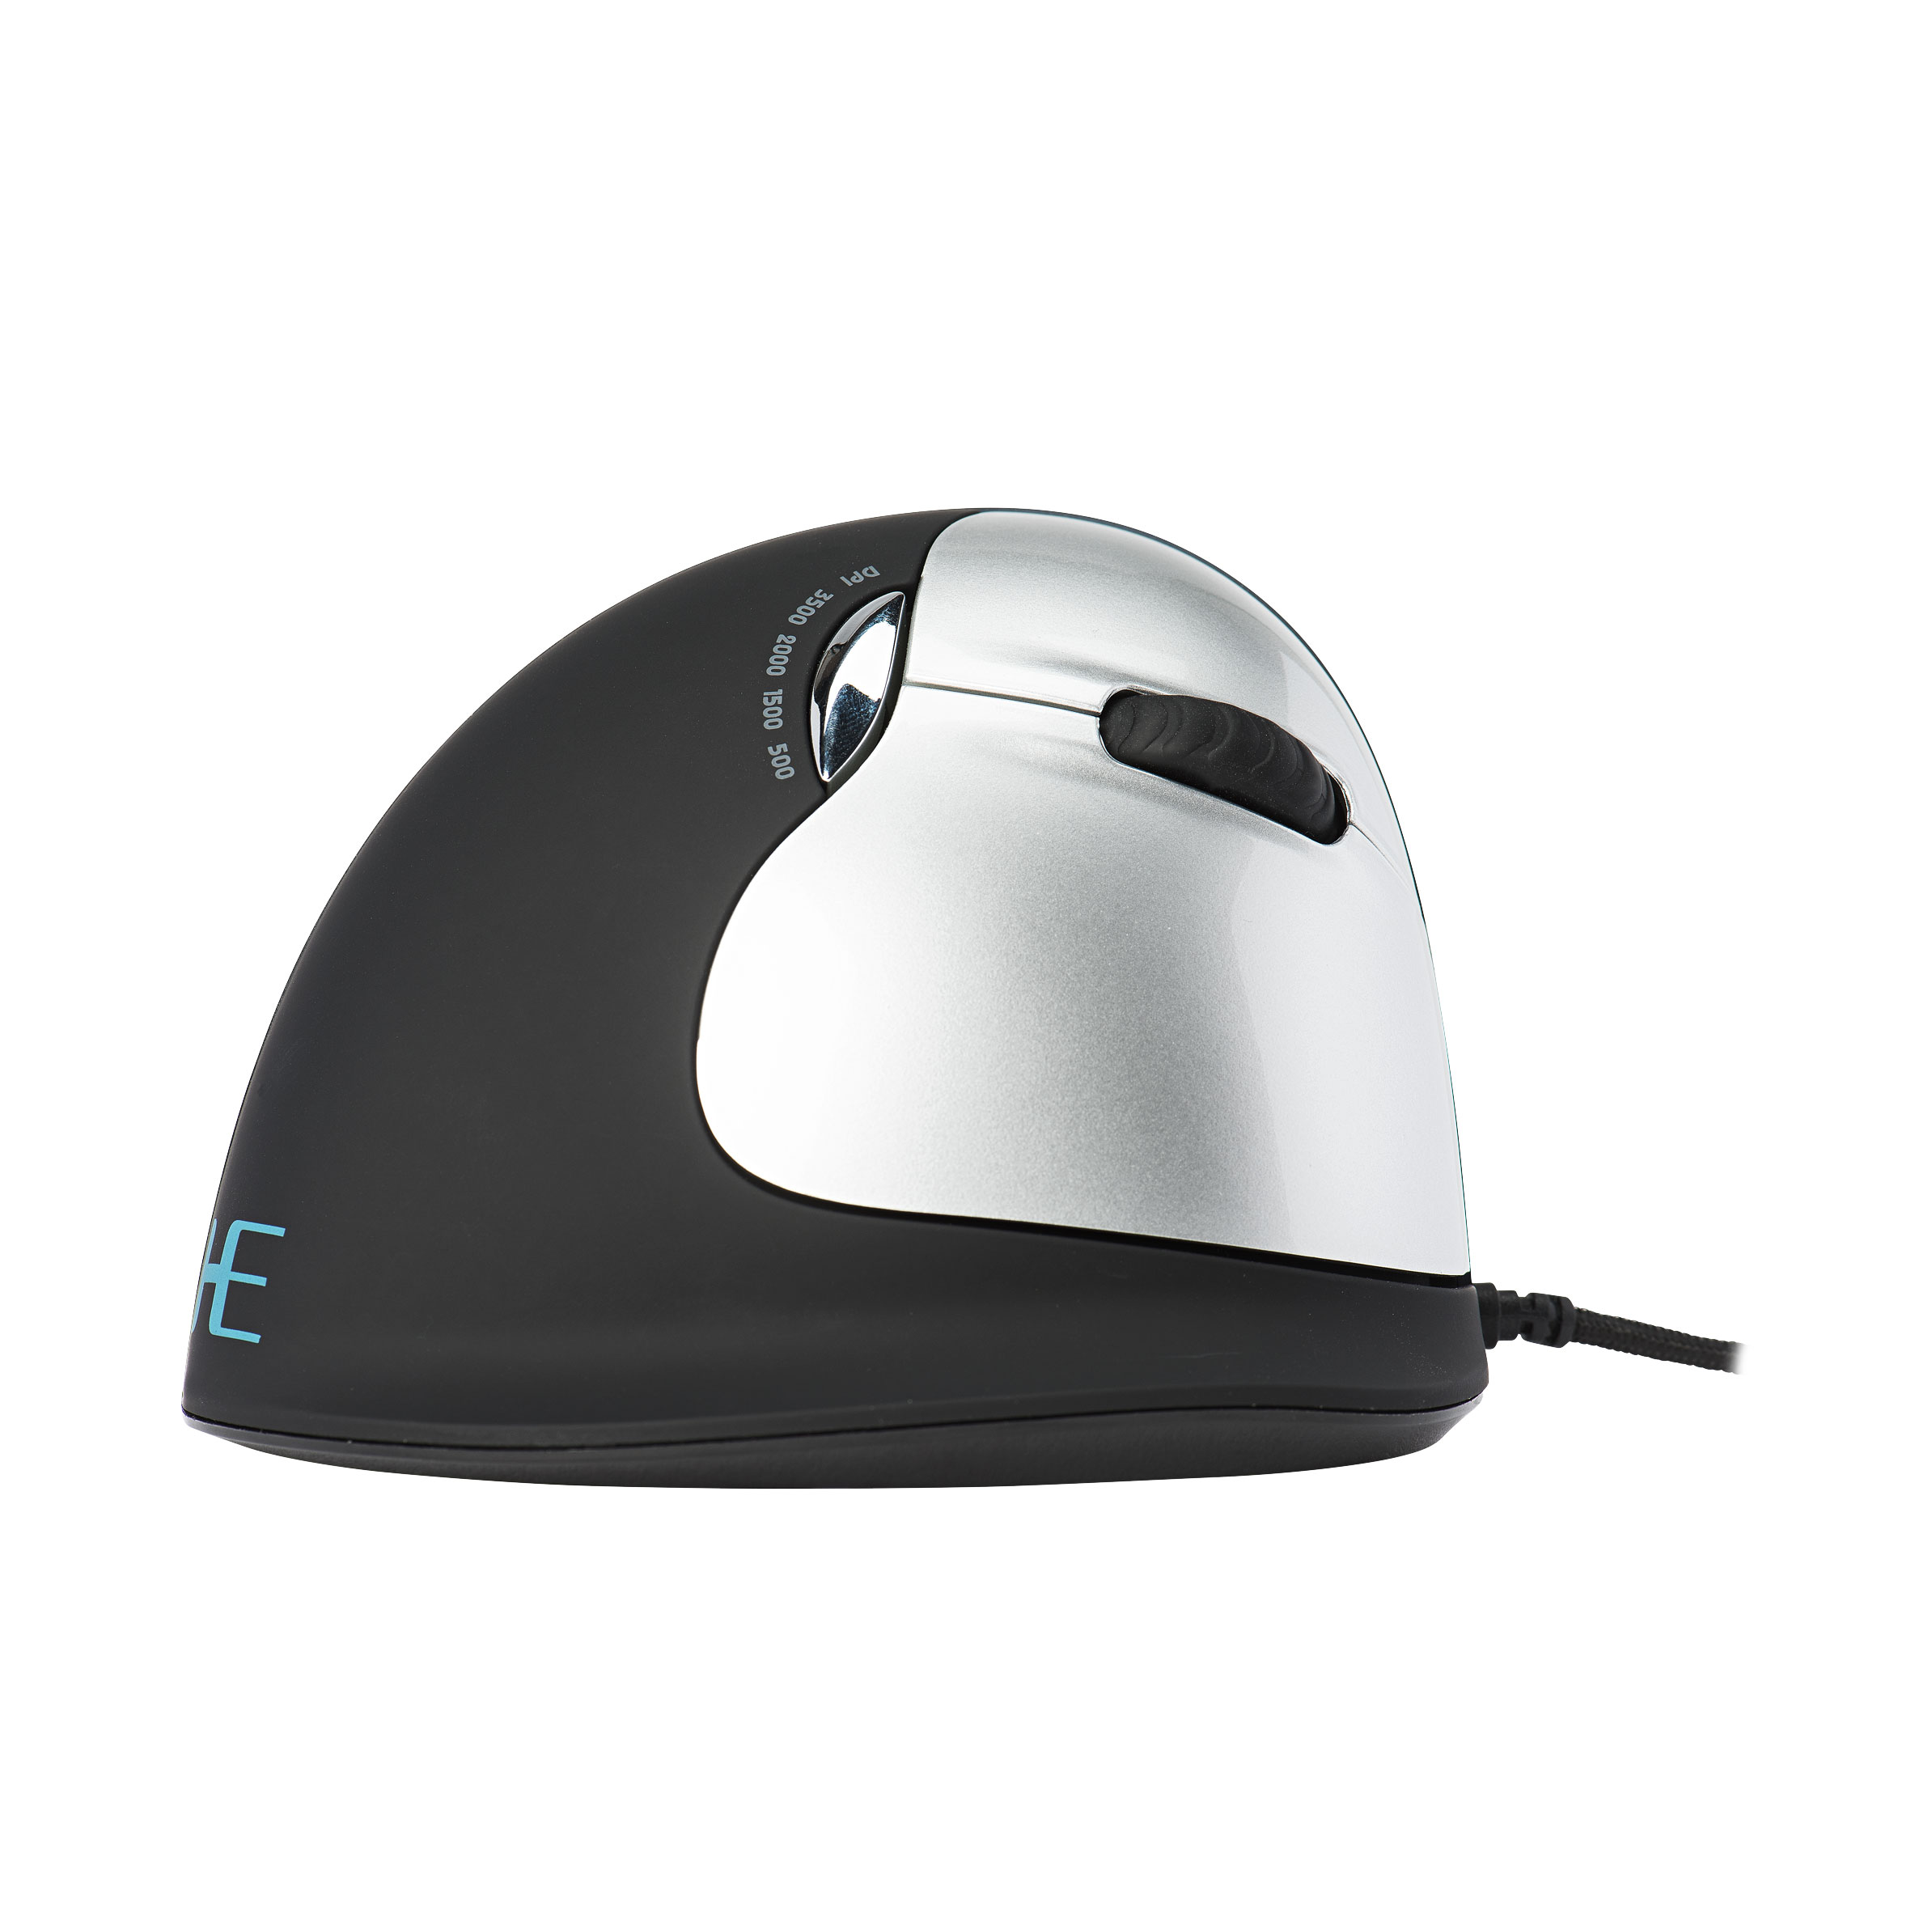 R-Go HE Mouse, Ergonomic mouse, Large (Hand Size above 185mm), Right Handed, wired - 4